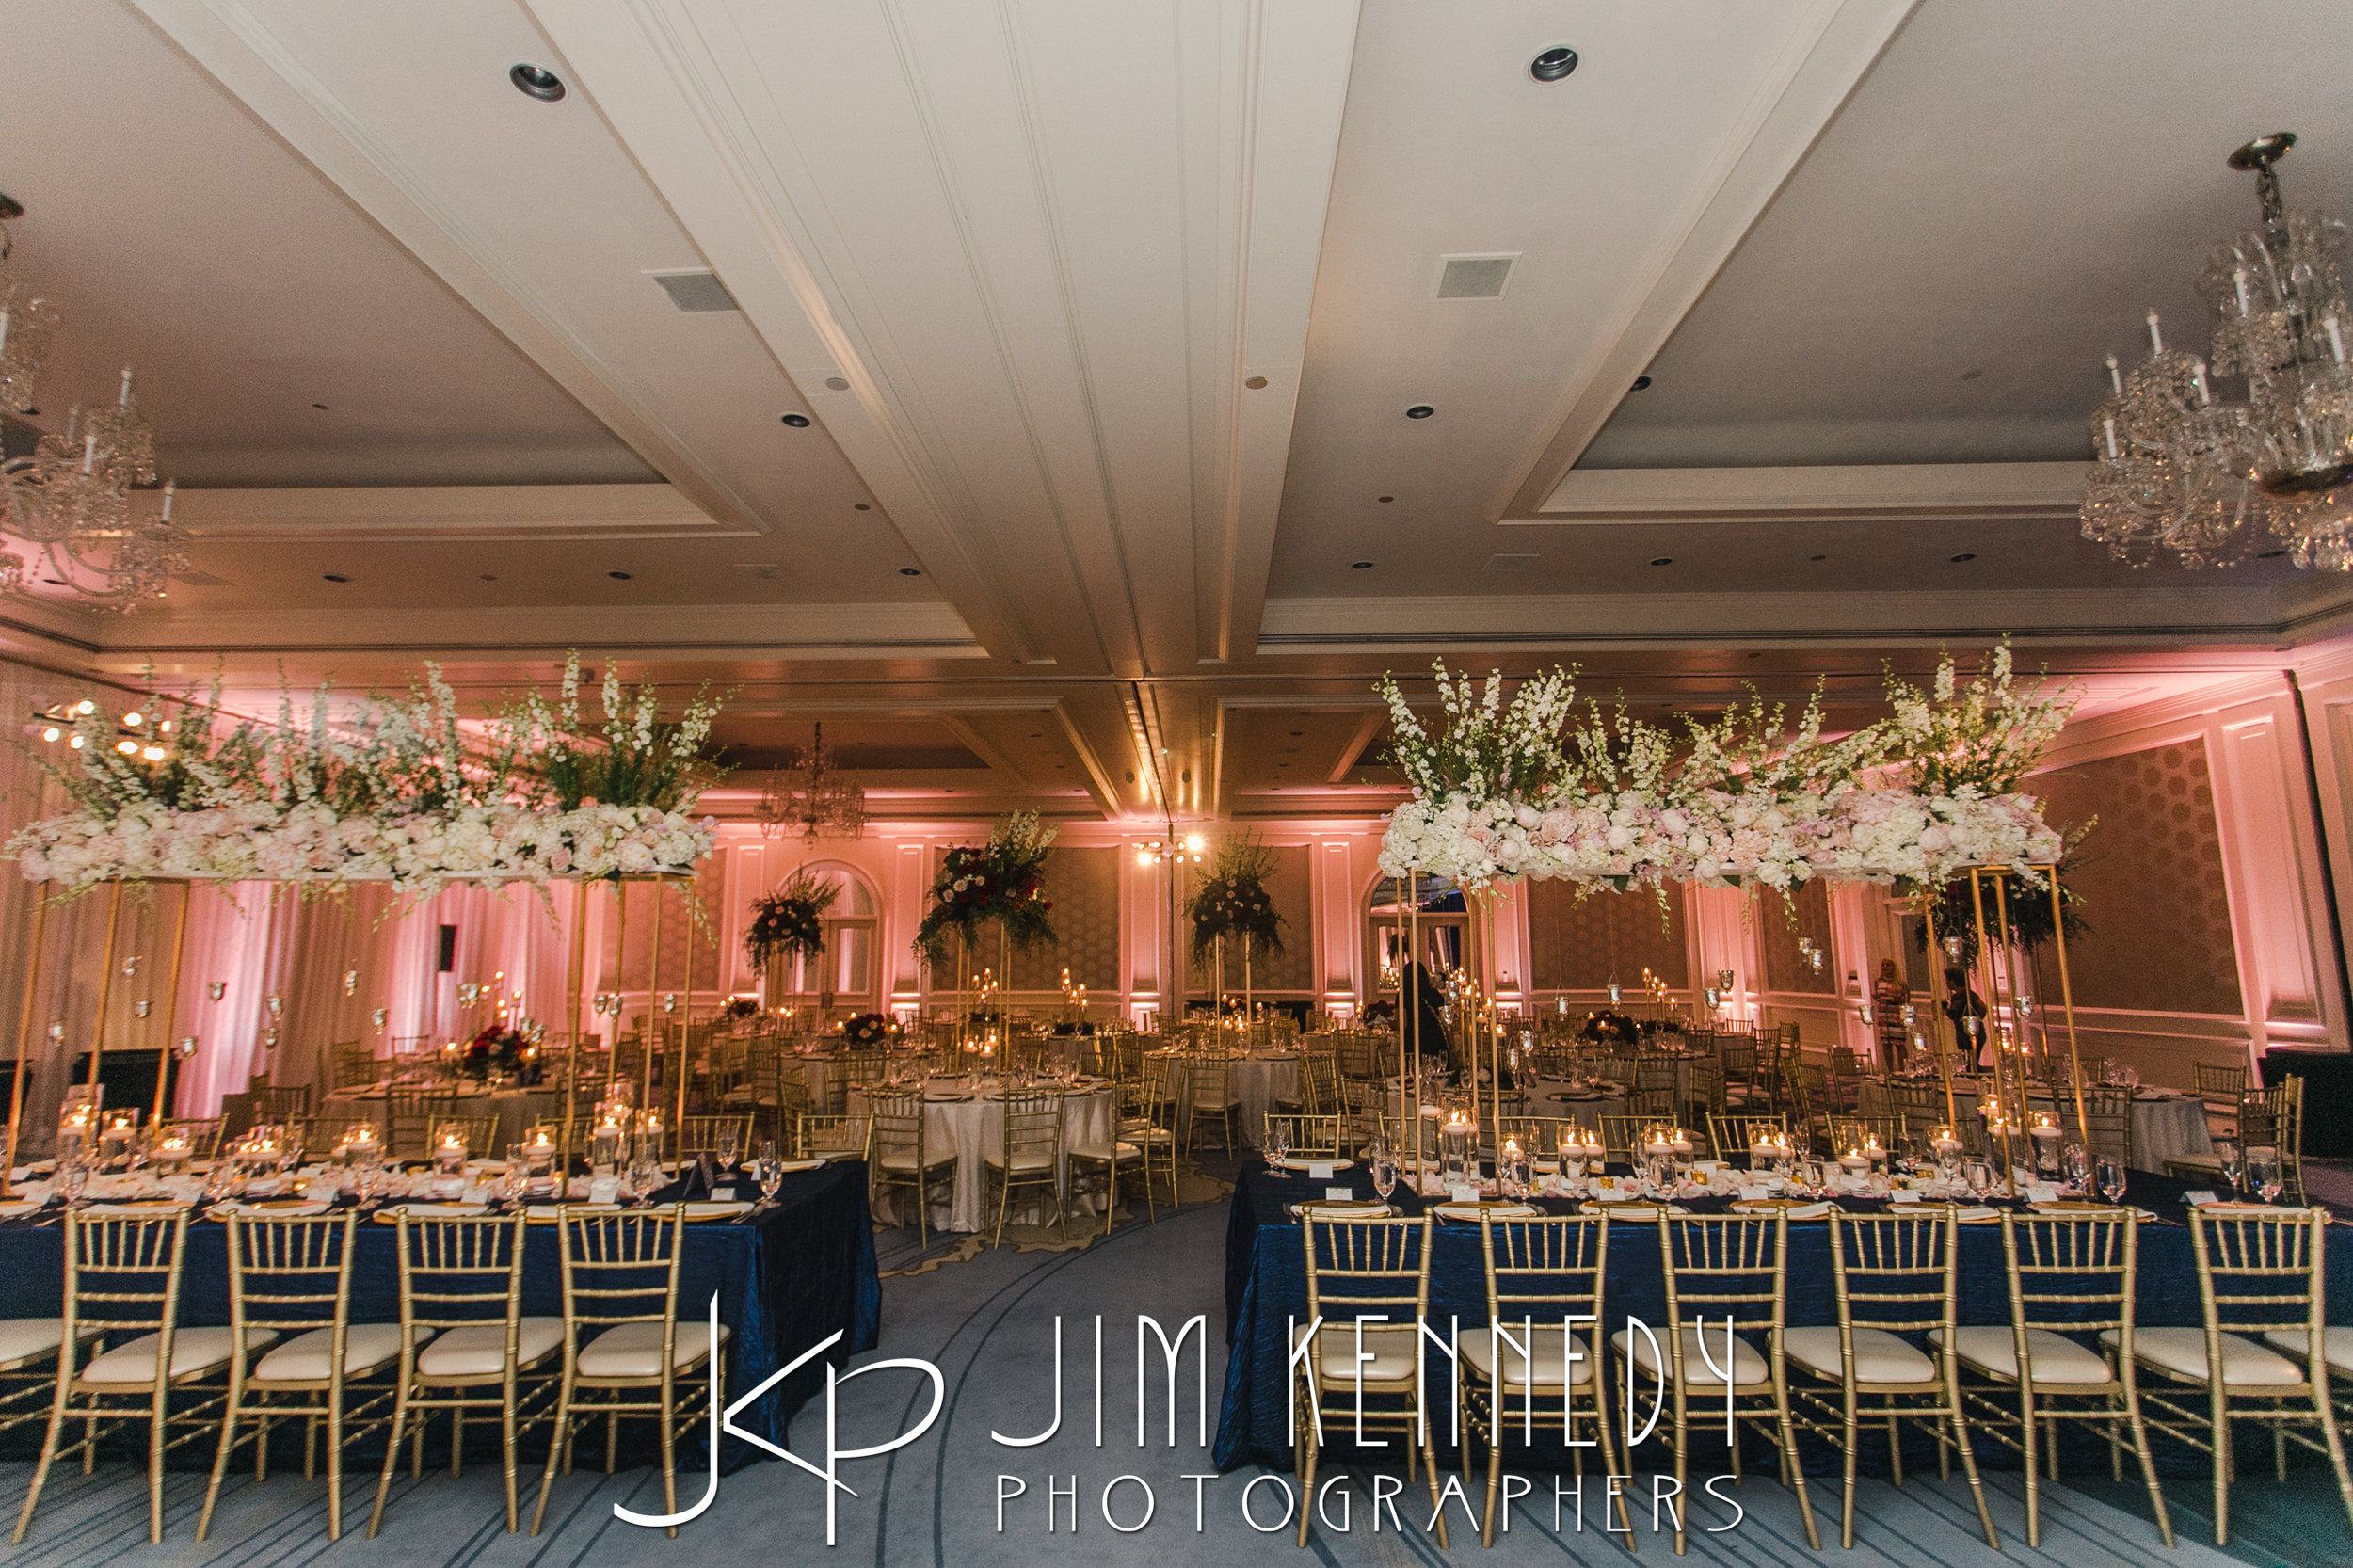 ritz-carlton-wedding-janaki-sameer_0221.JPG